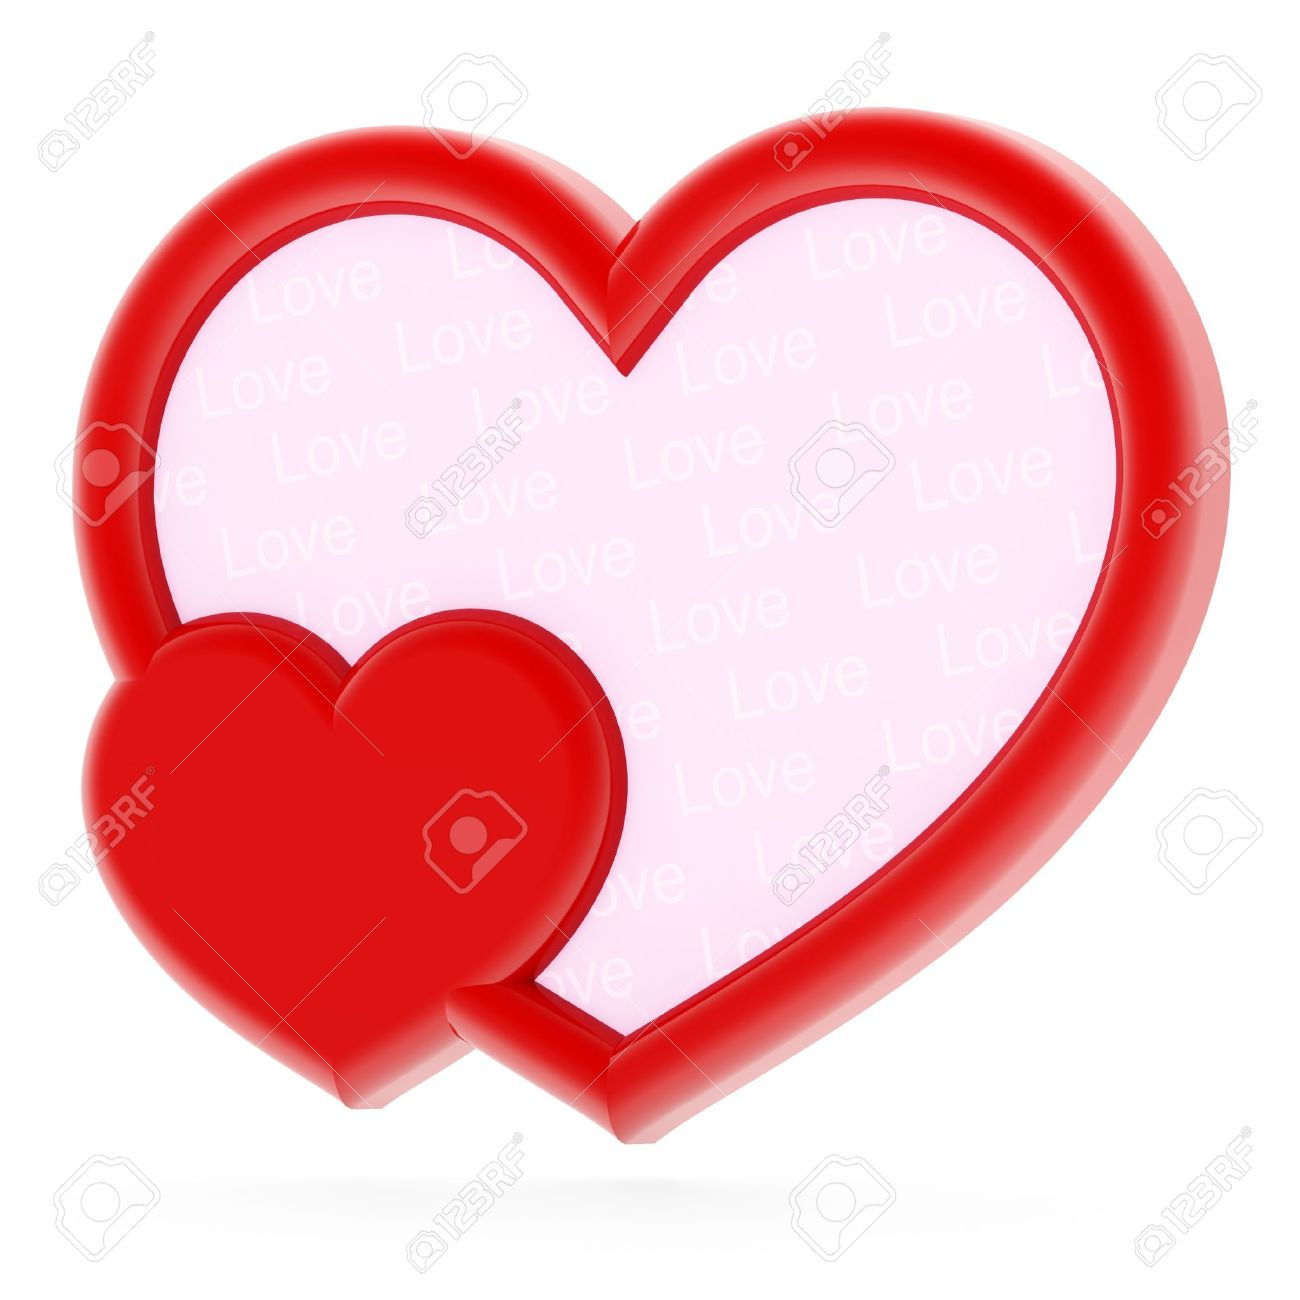 Red Heart-shaped Photo Frame On White Background Stock Photo ...